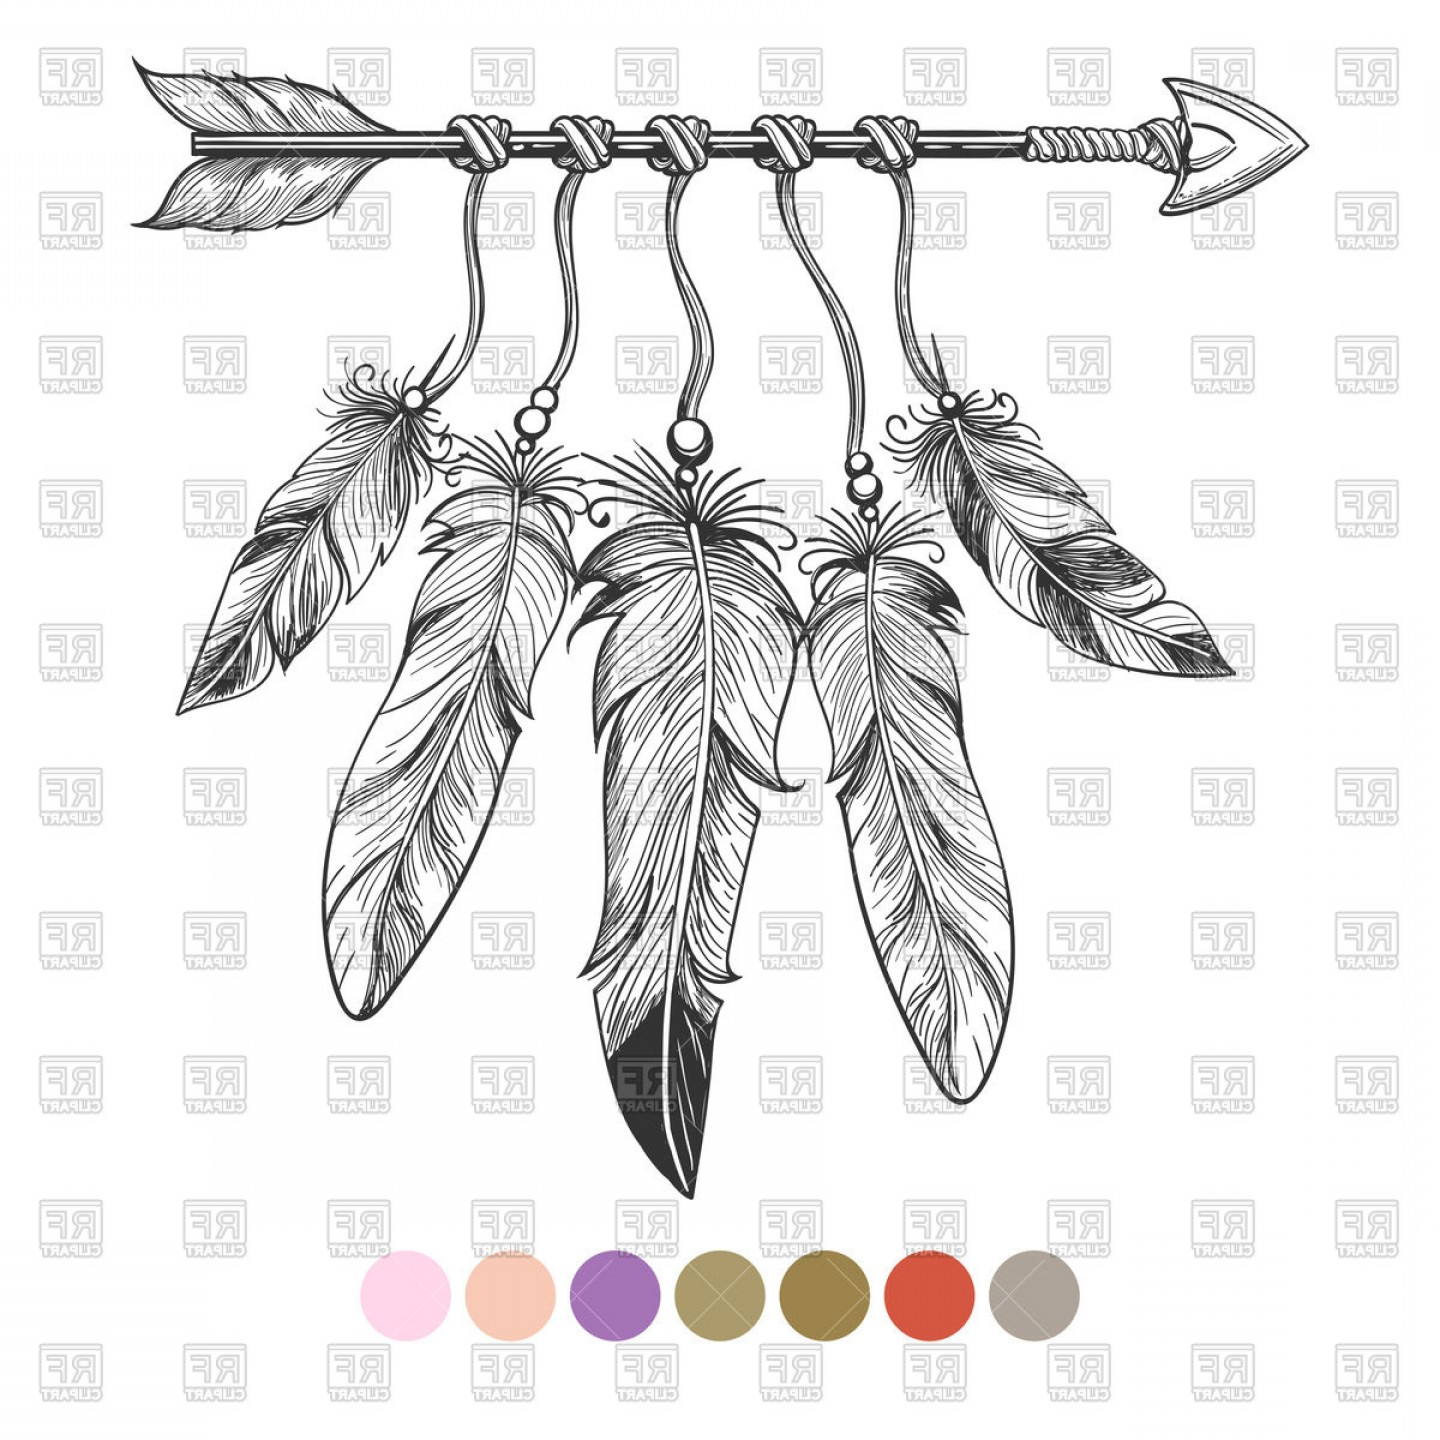 Boho clipart black and white svg royalty free library Hand Drawn Boho Element Arrow And Feathers Vector Clipart | HandandBeak svg royalty free library